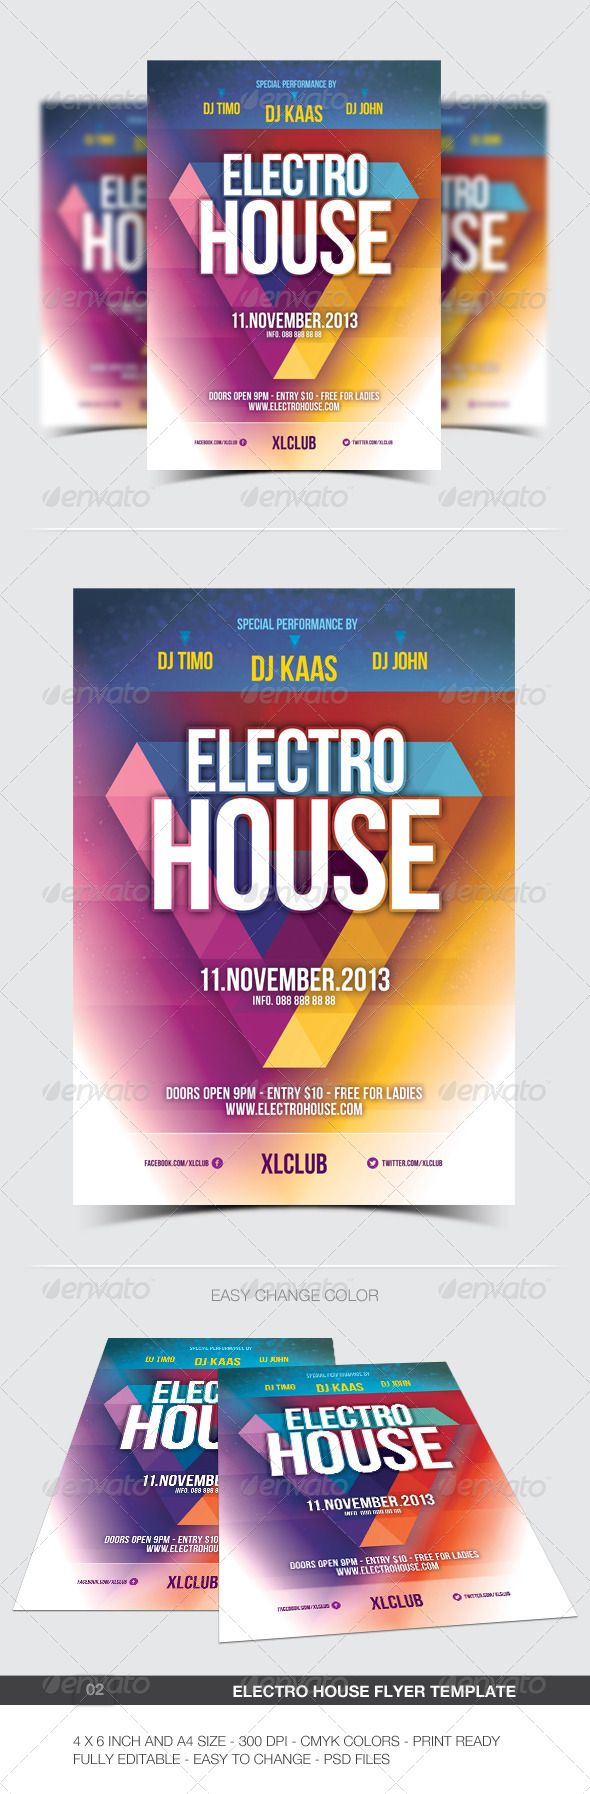 Electro House Party Flyer Design Template- 02